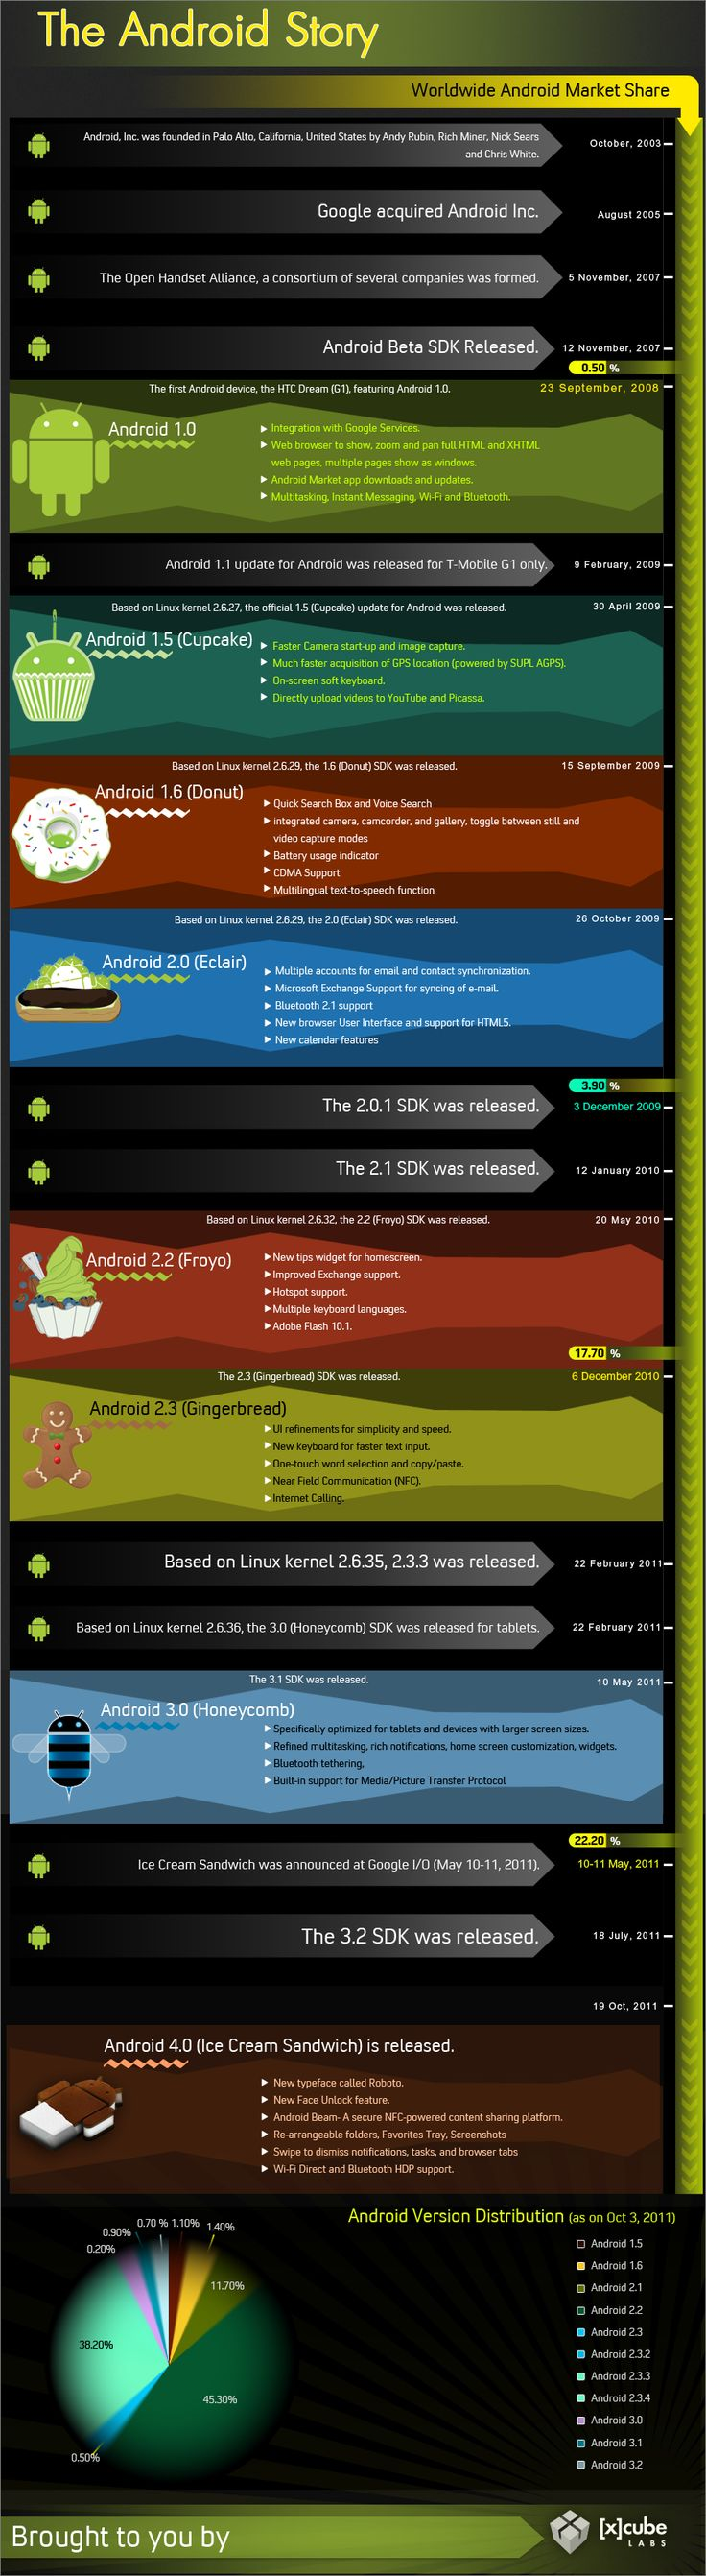 A creative infographic developed by [x]cube LABS showing timeline of various Android OS versions and updates right from the first Android 1.0 to the recent Android 4.0 Ice Cream Sandwich